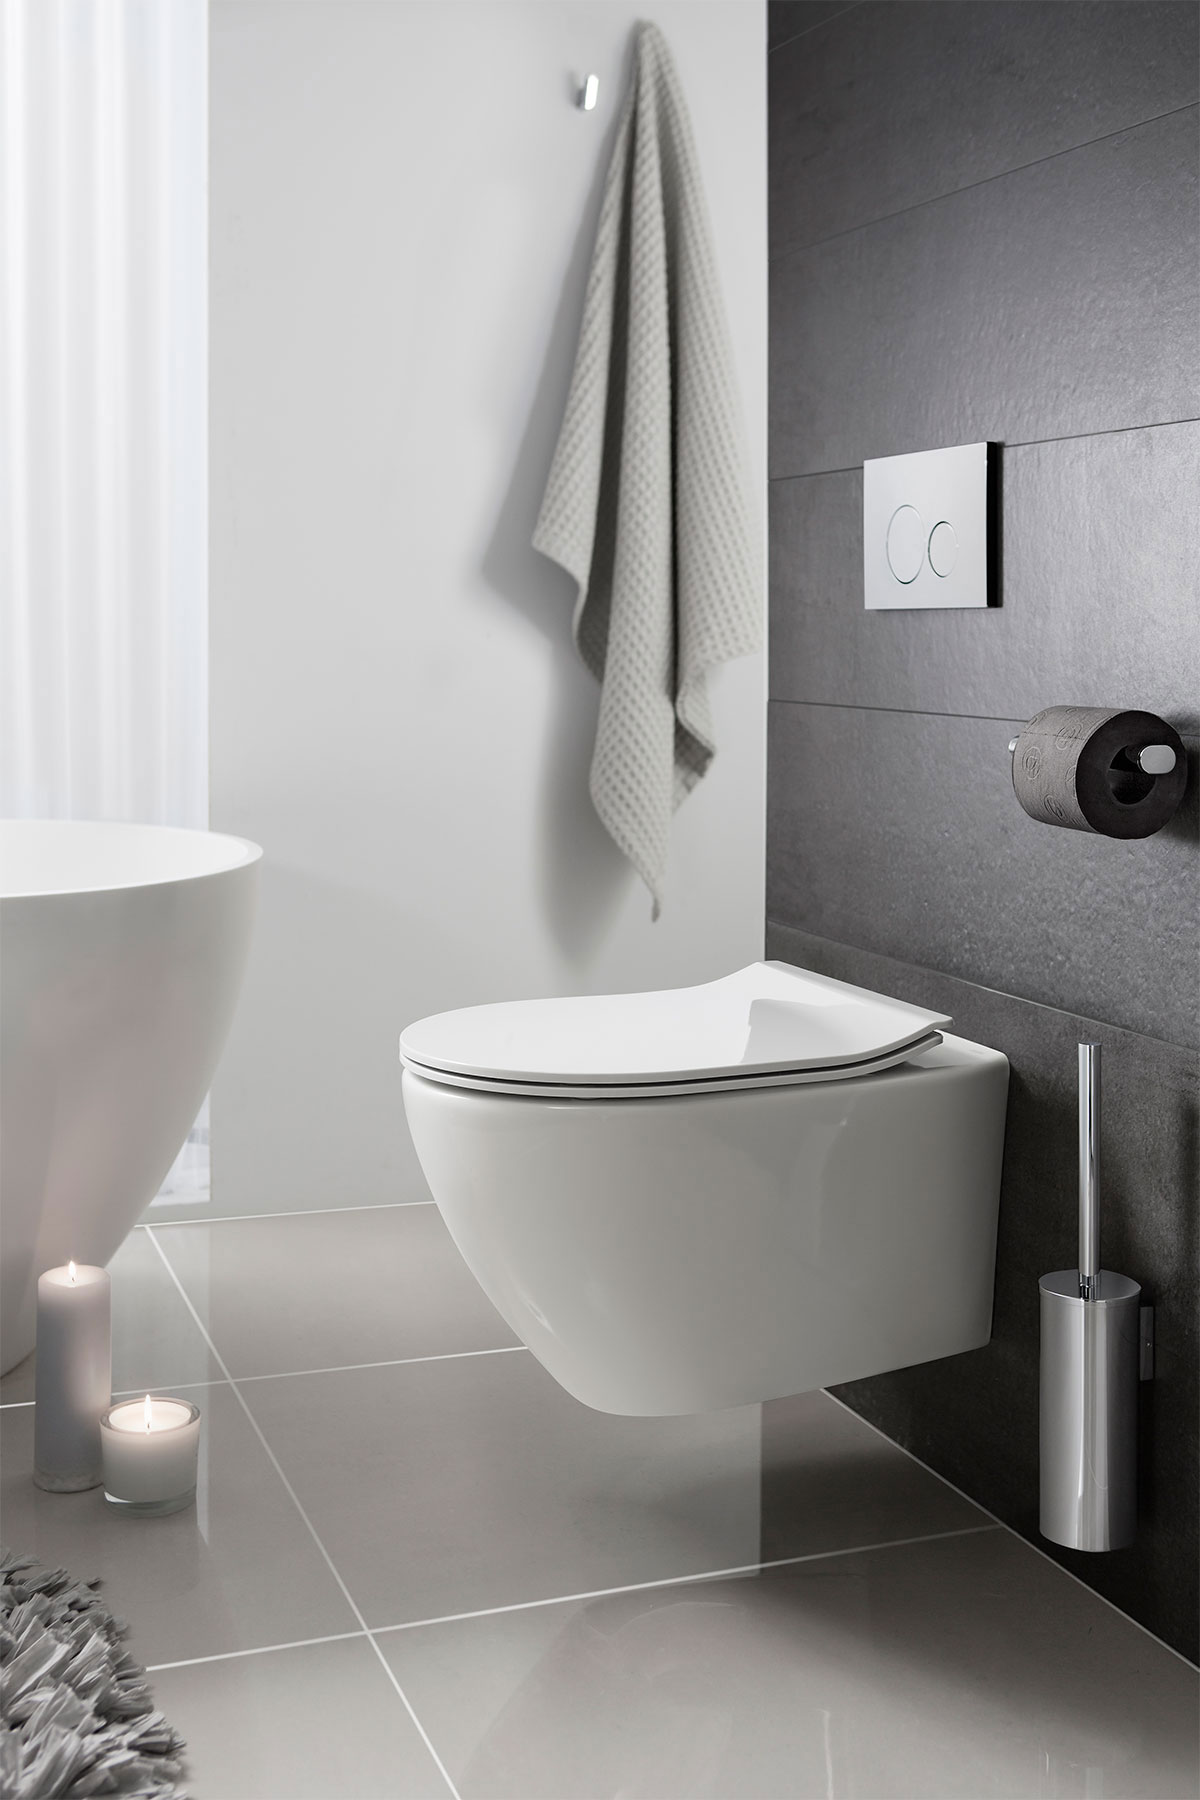 Svelte White Wall Hung Wc Soft Close Seat In Wall Hung